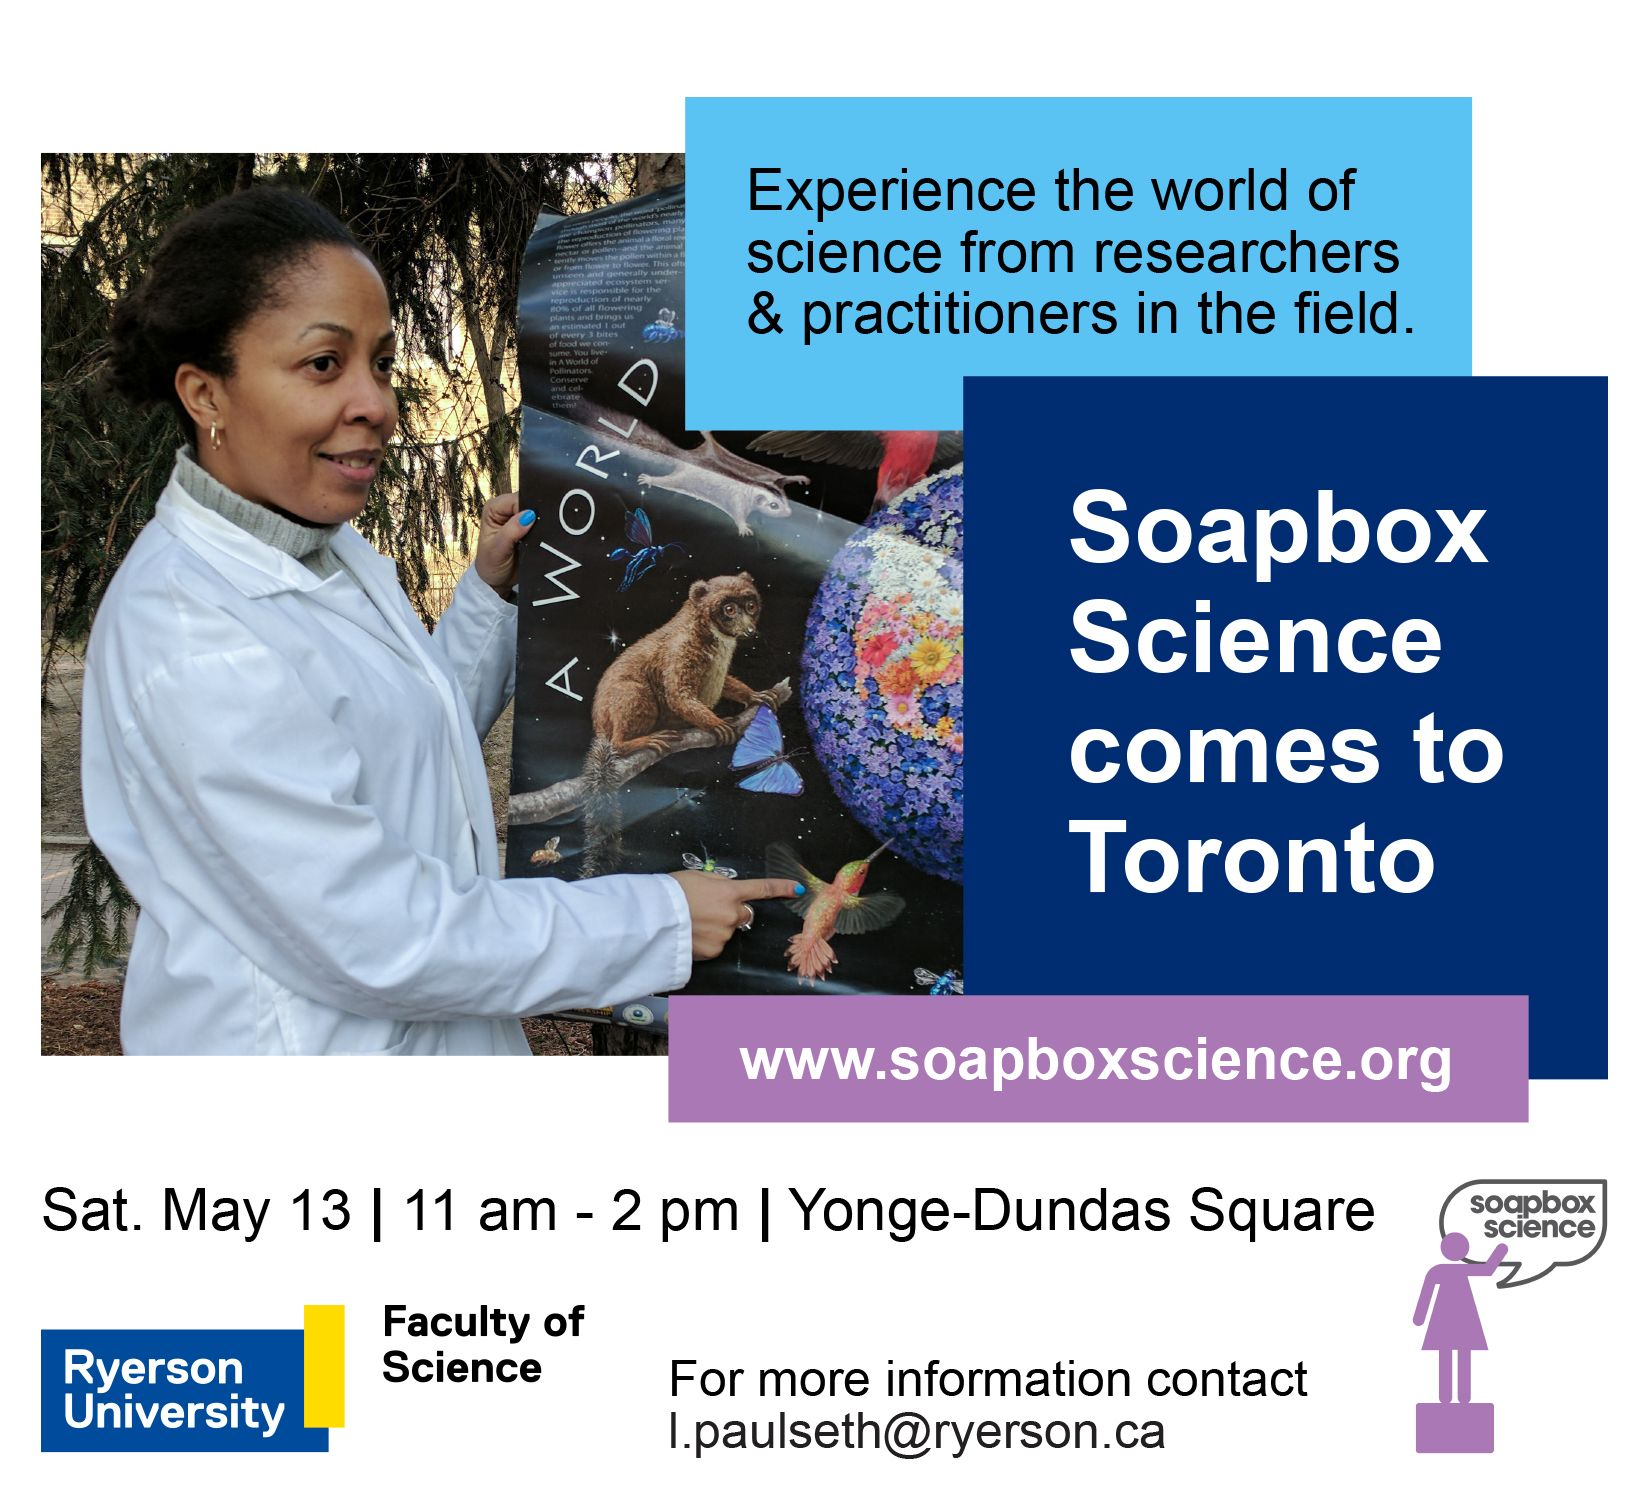 We're so excited to bring @SoapboxScience to Canada & empower #youth to explore #Science https://t.co/vY2p3KdWYQ #soapboxsciTO @RyersonSci https://t.co/t68w0xc0tj